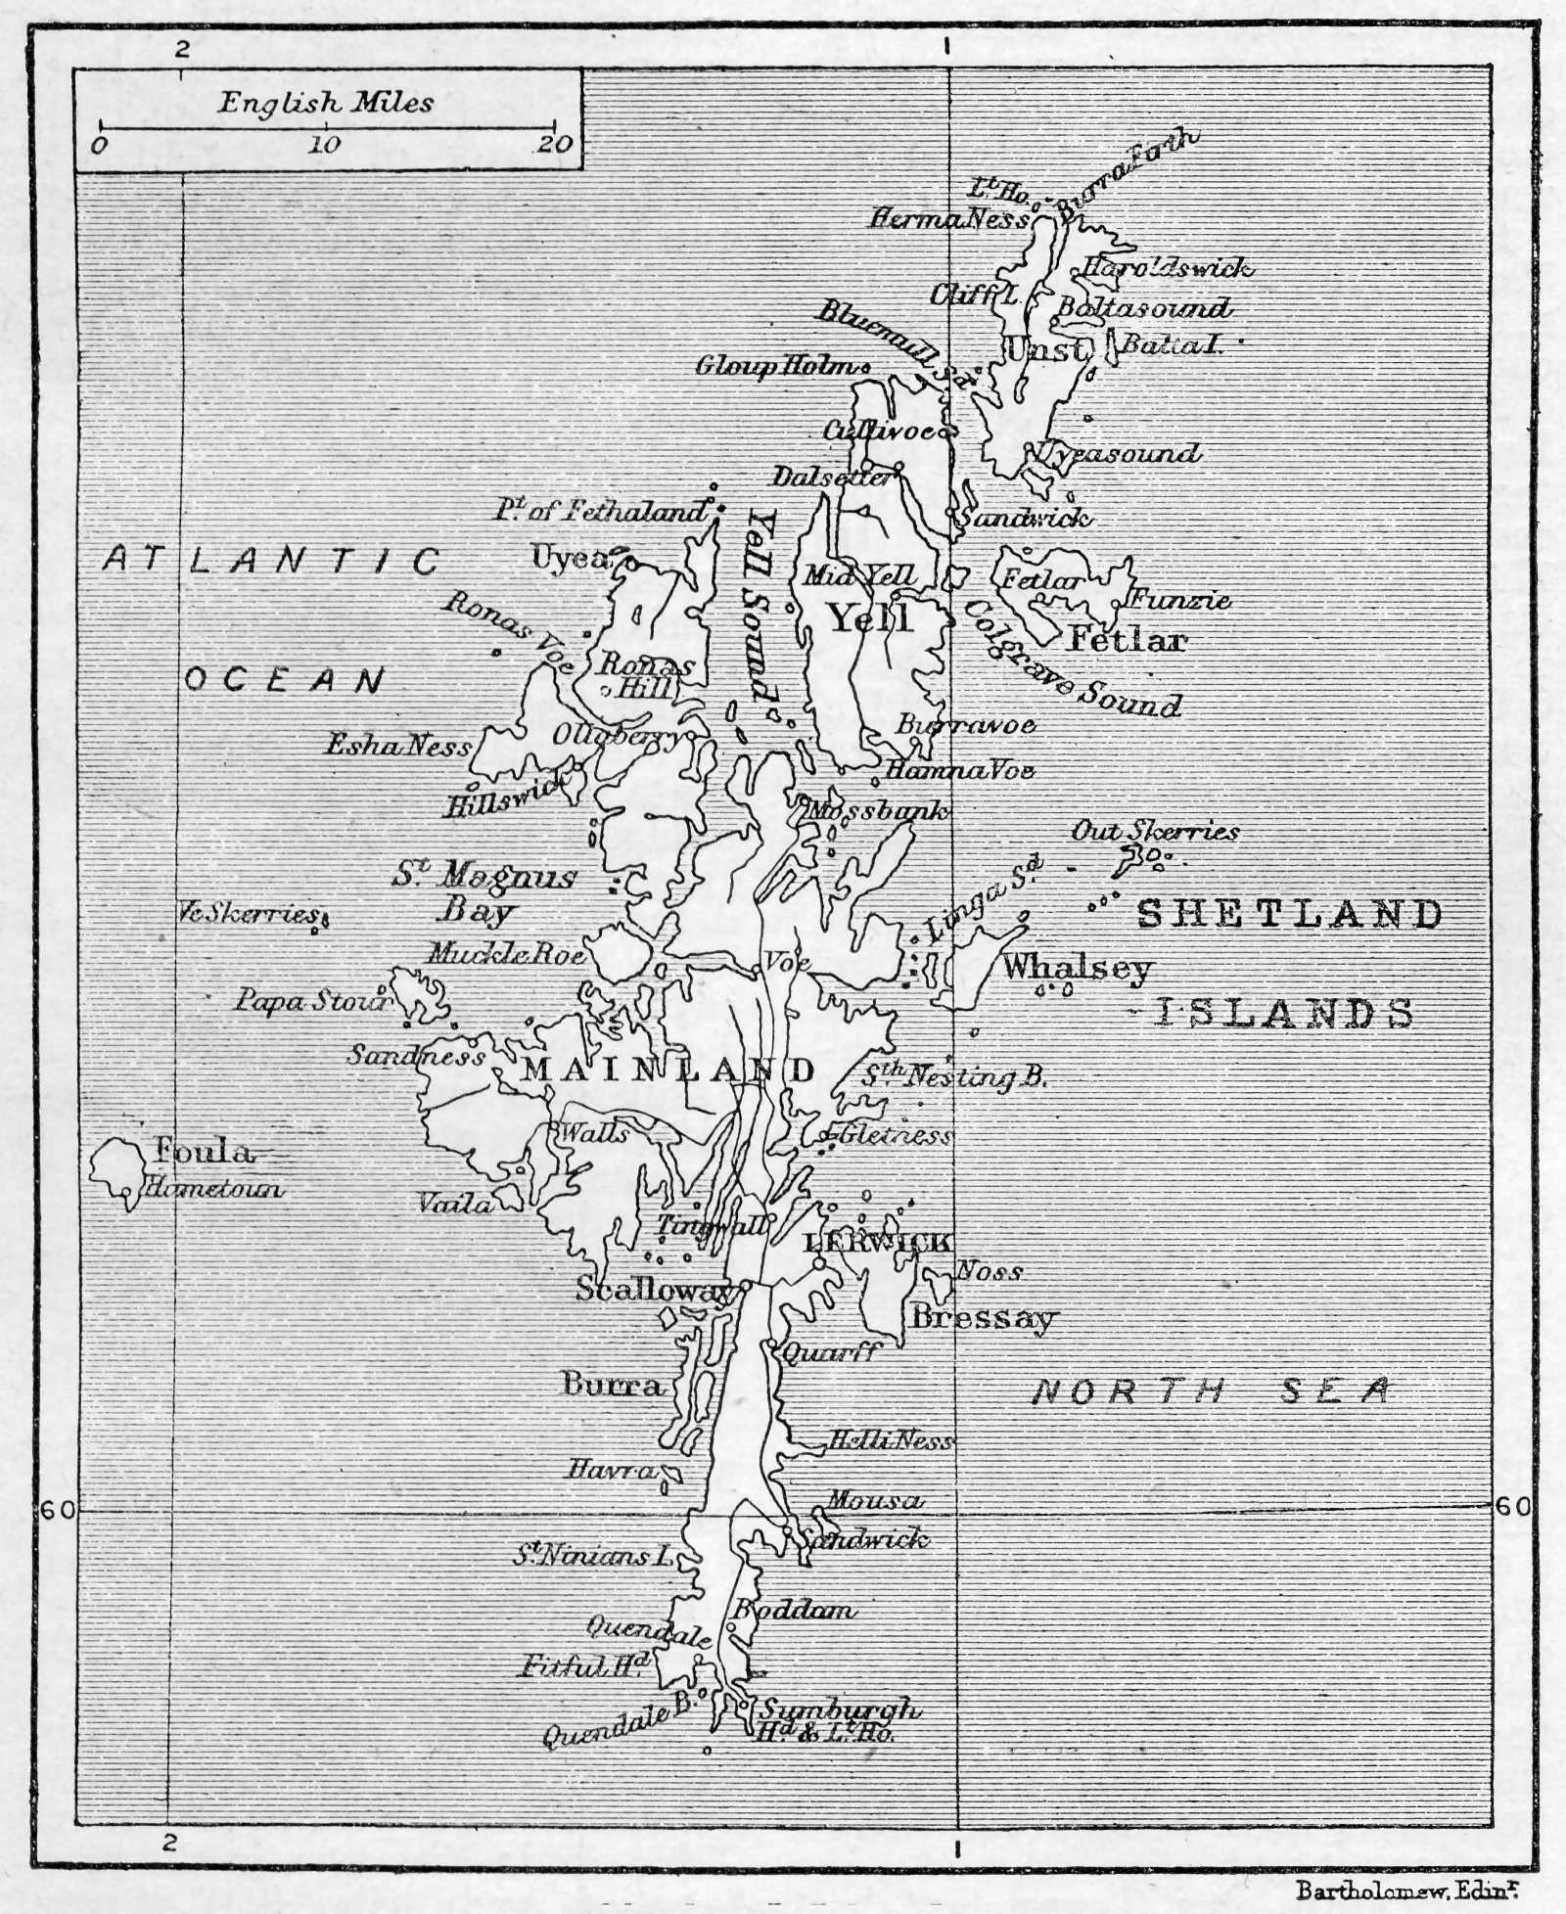 Map of Shetland Islands 1906